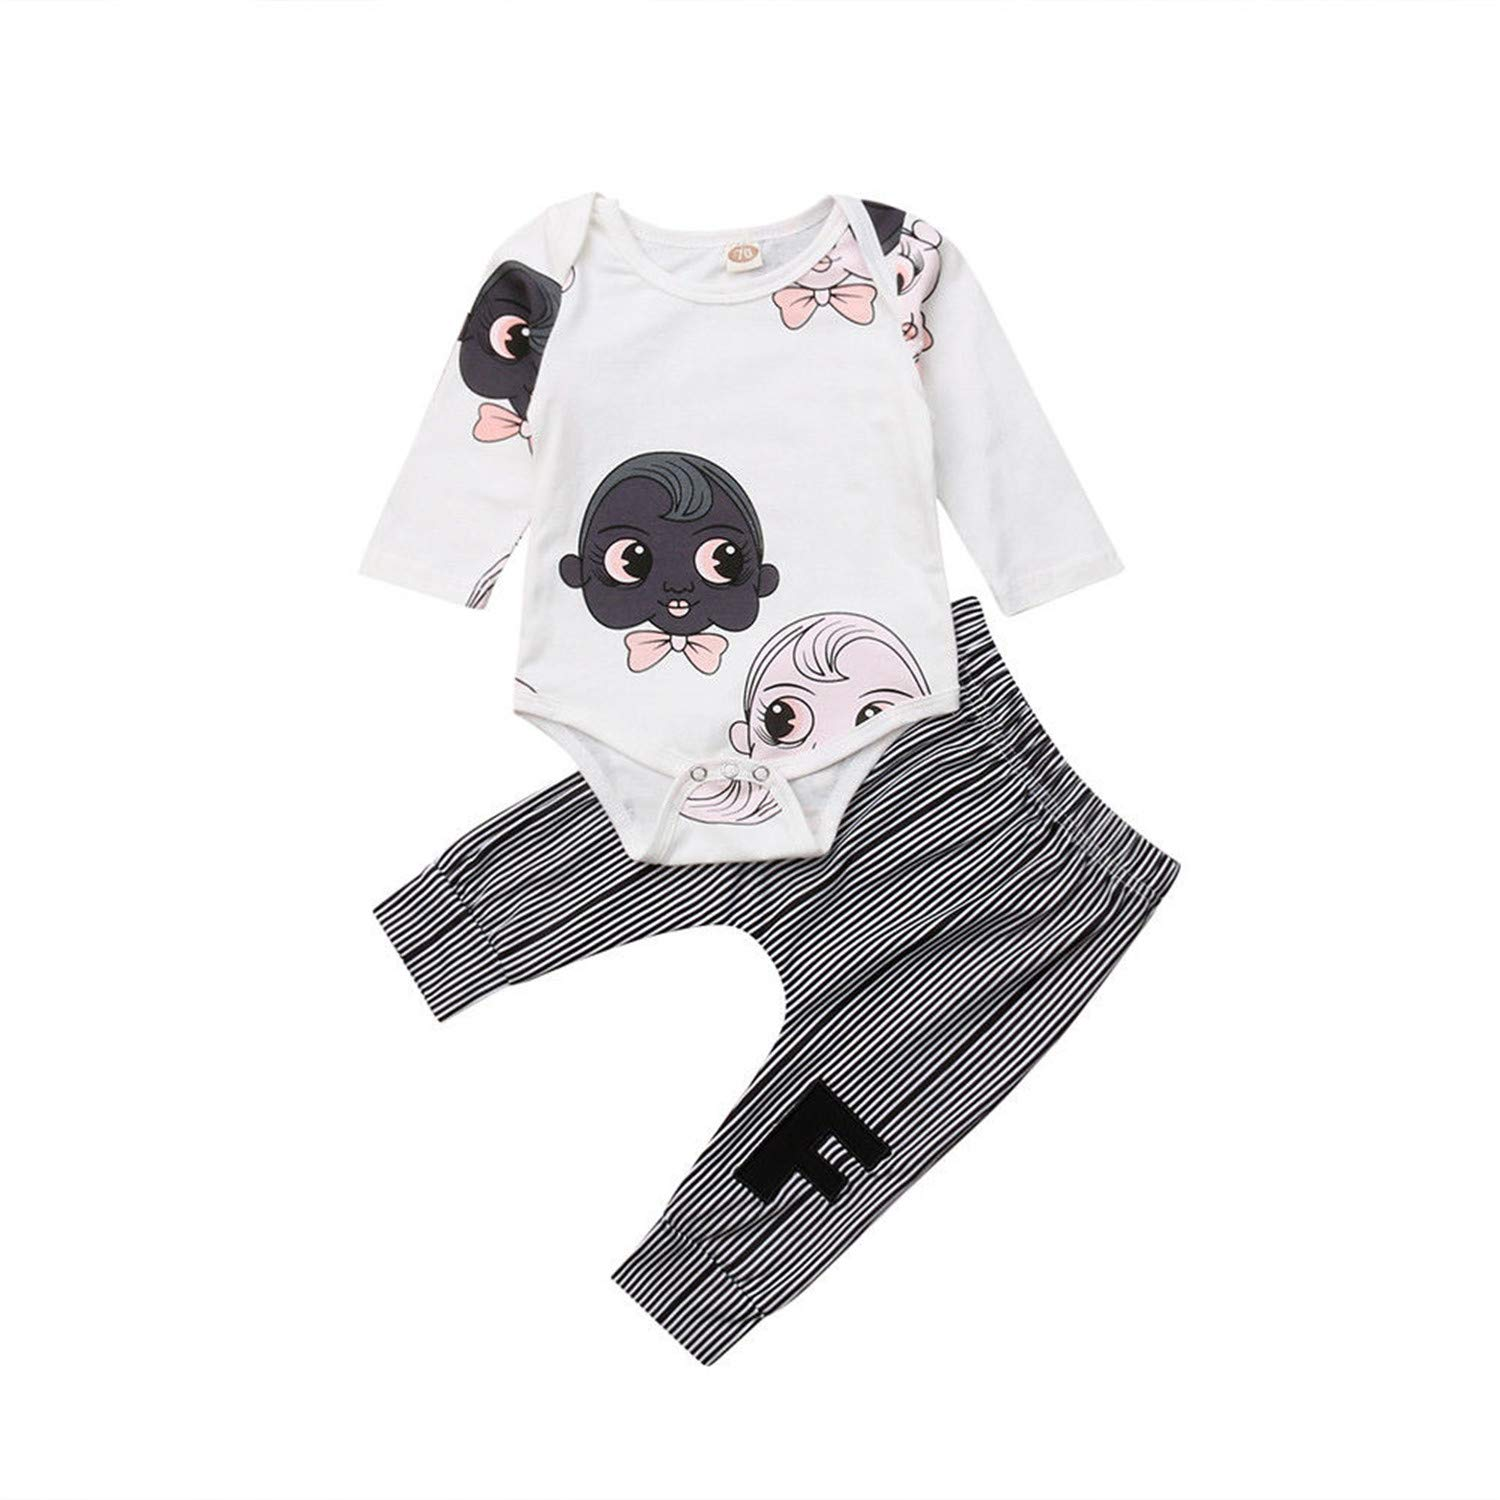 e99ad2b3307 Amazon.com  Cartoon Newborn Baby Girl Long Sleeve Tops Romper Jumpsuit  Striped Pants Outfits Clothes Set  Clothing